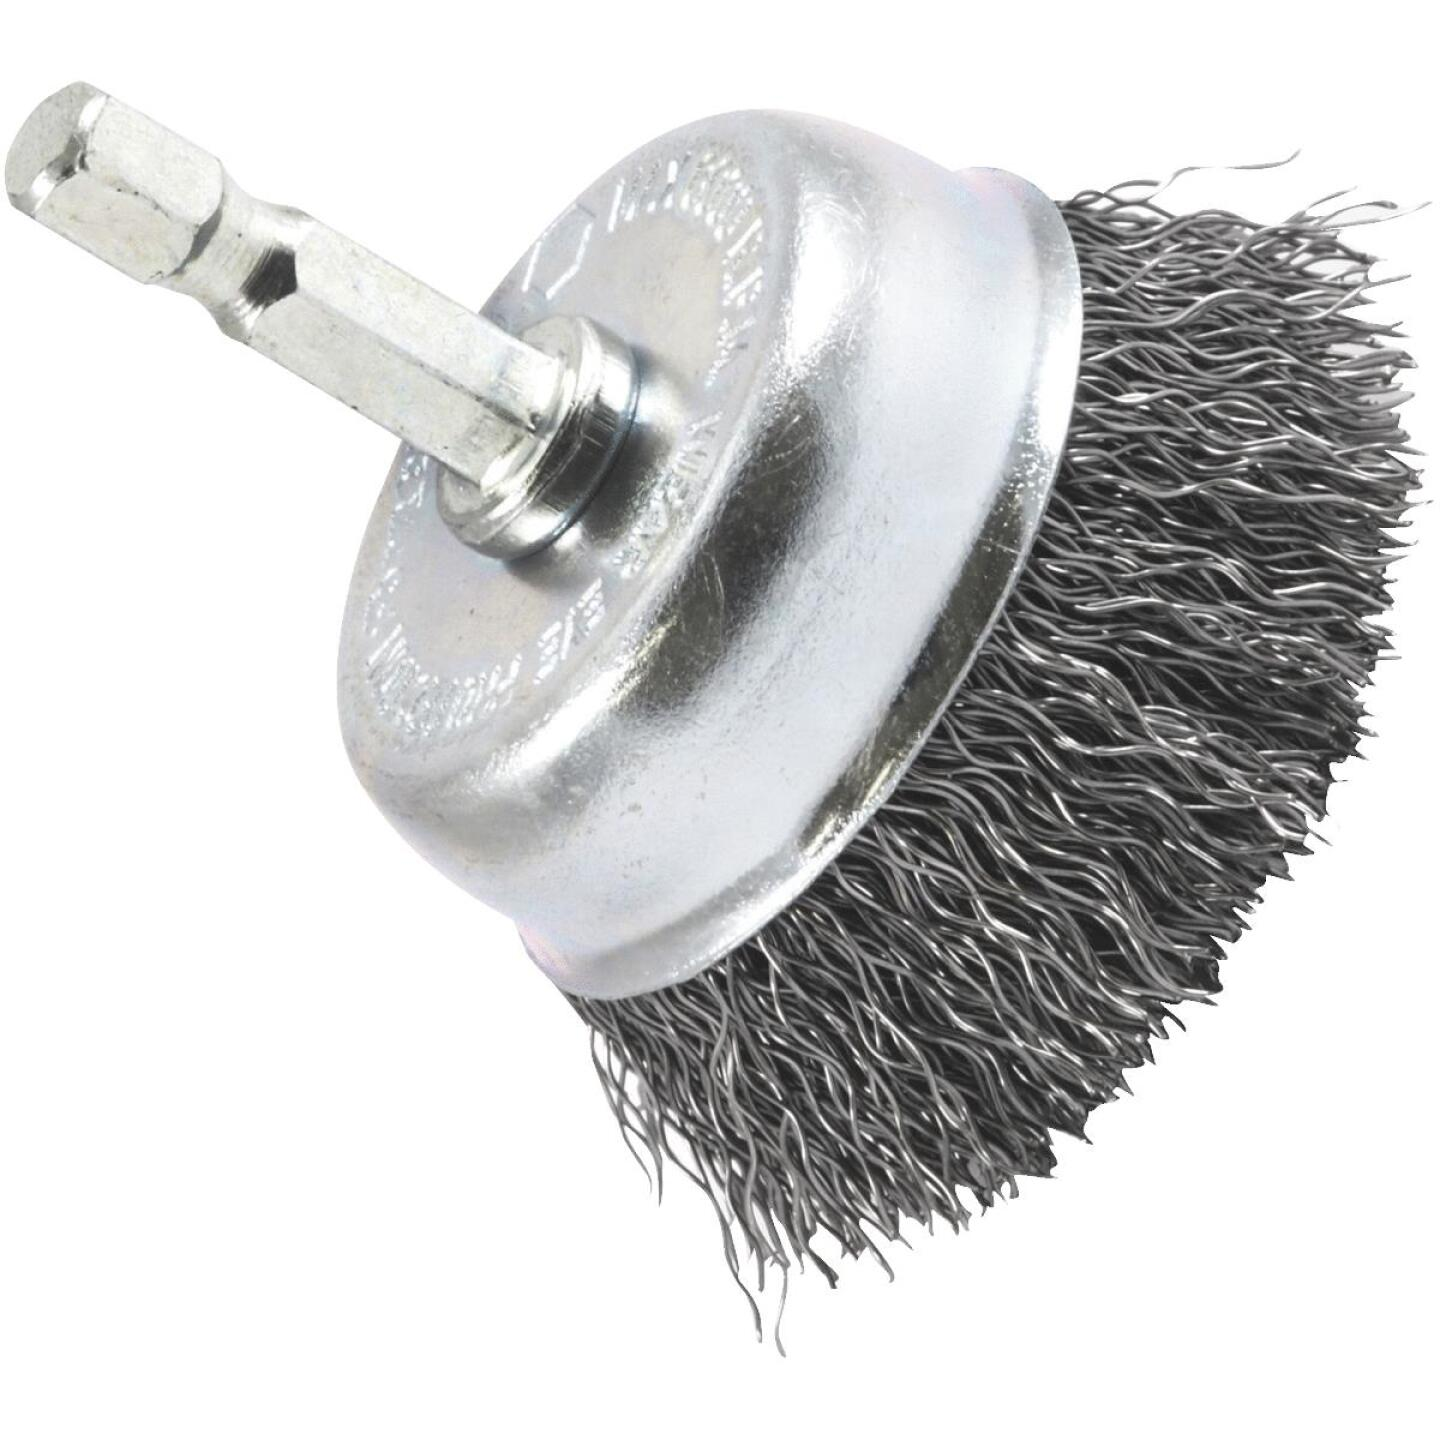 Forney 2 In. 1/4 In. Hex Coarse Drill-Mounted Wire Brush Image 1